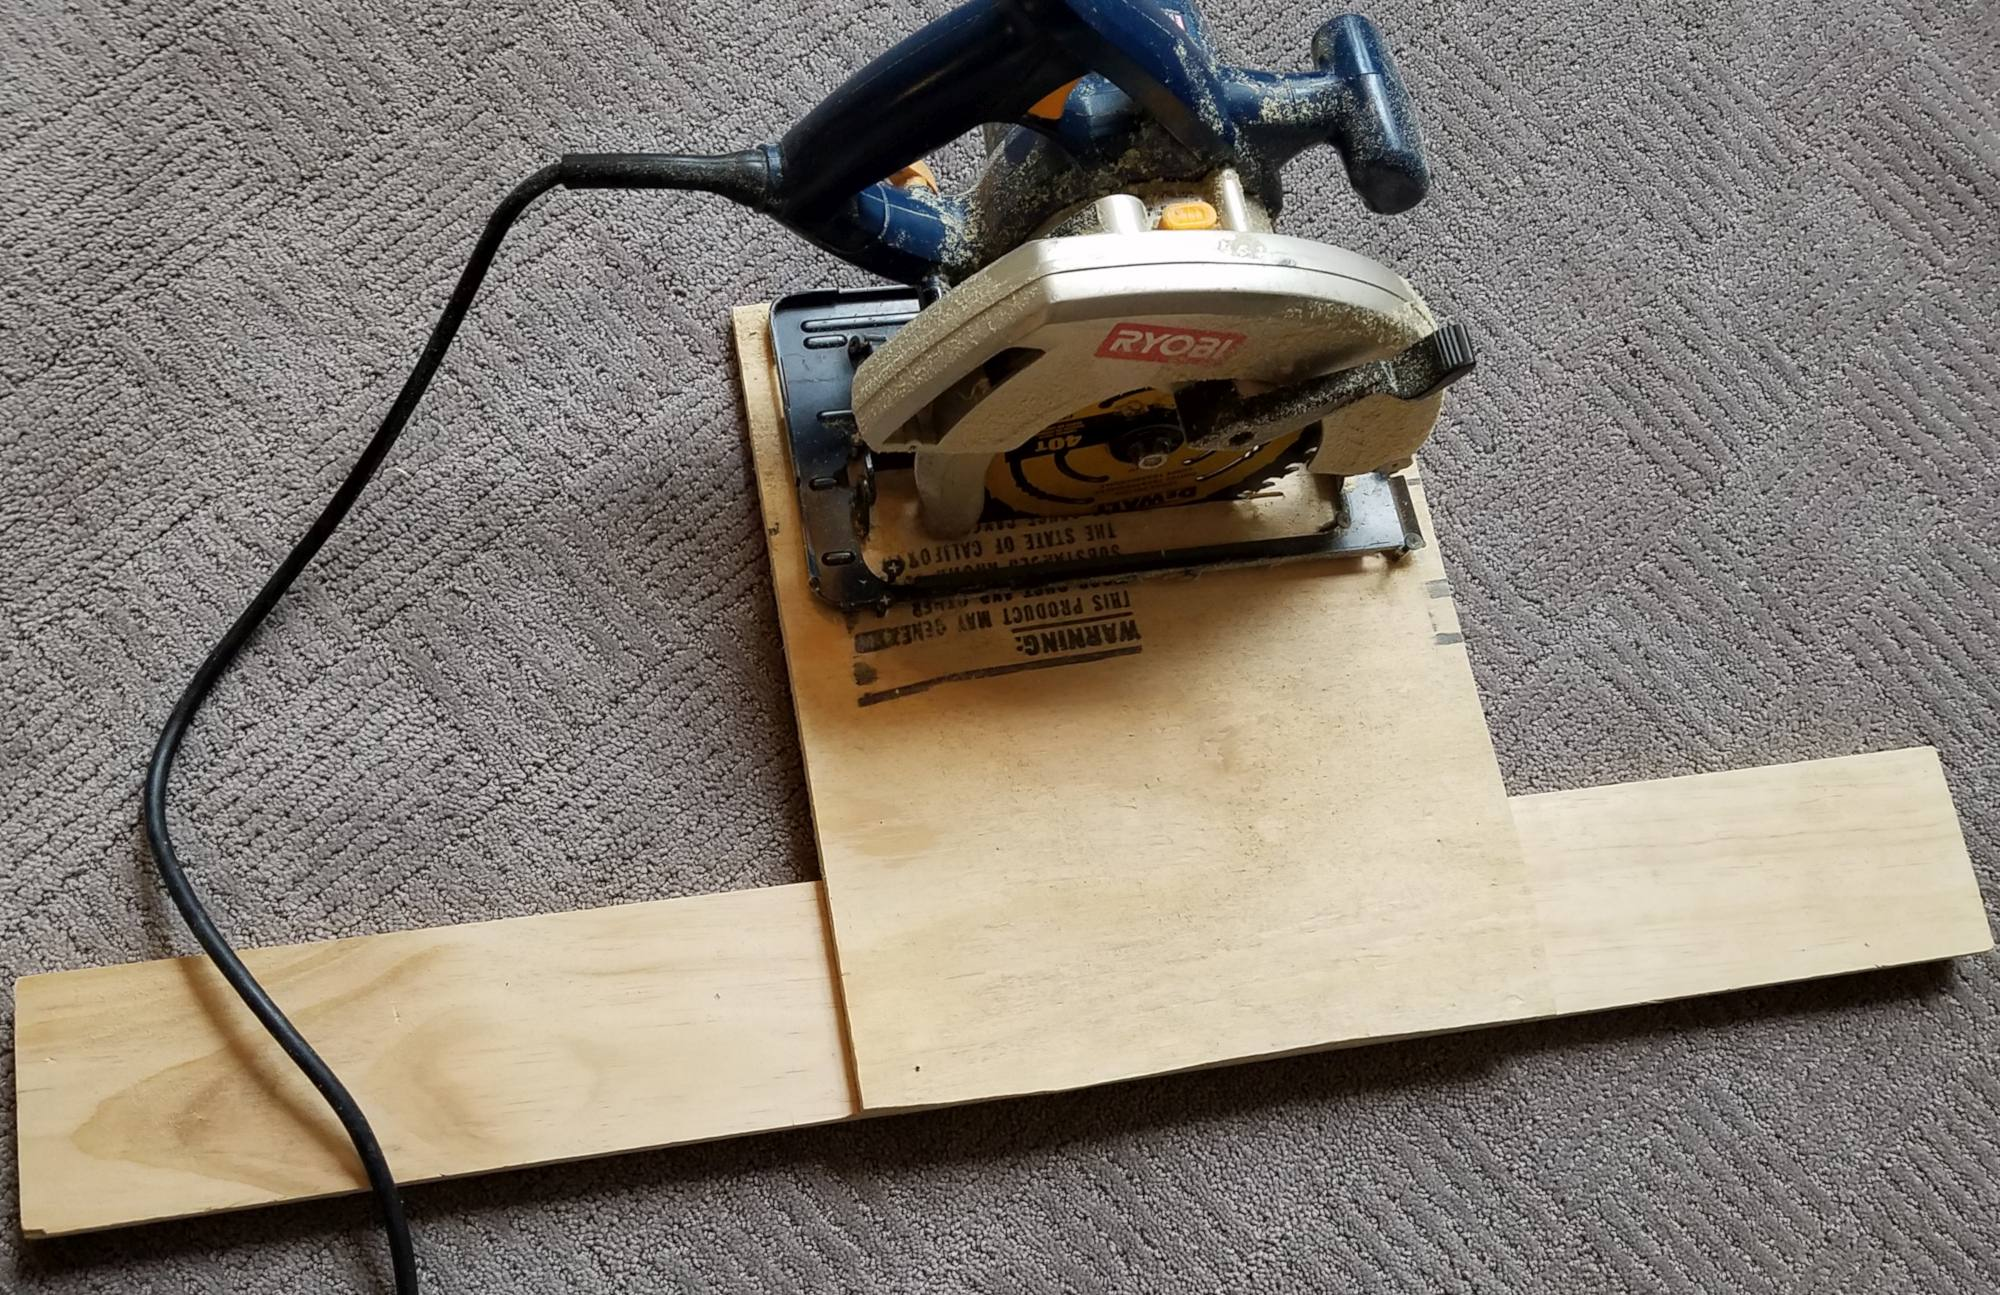 DIY Rustic Wide Plank Plywood Flooring - Secure The Jig To The Circular Saw Using Screws